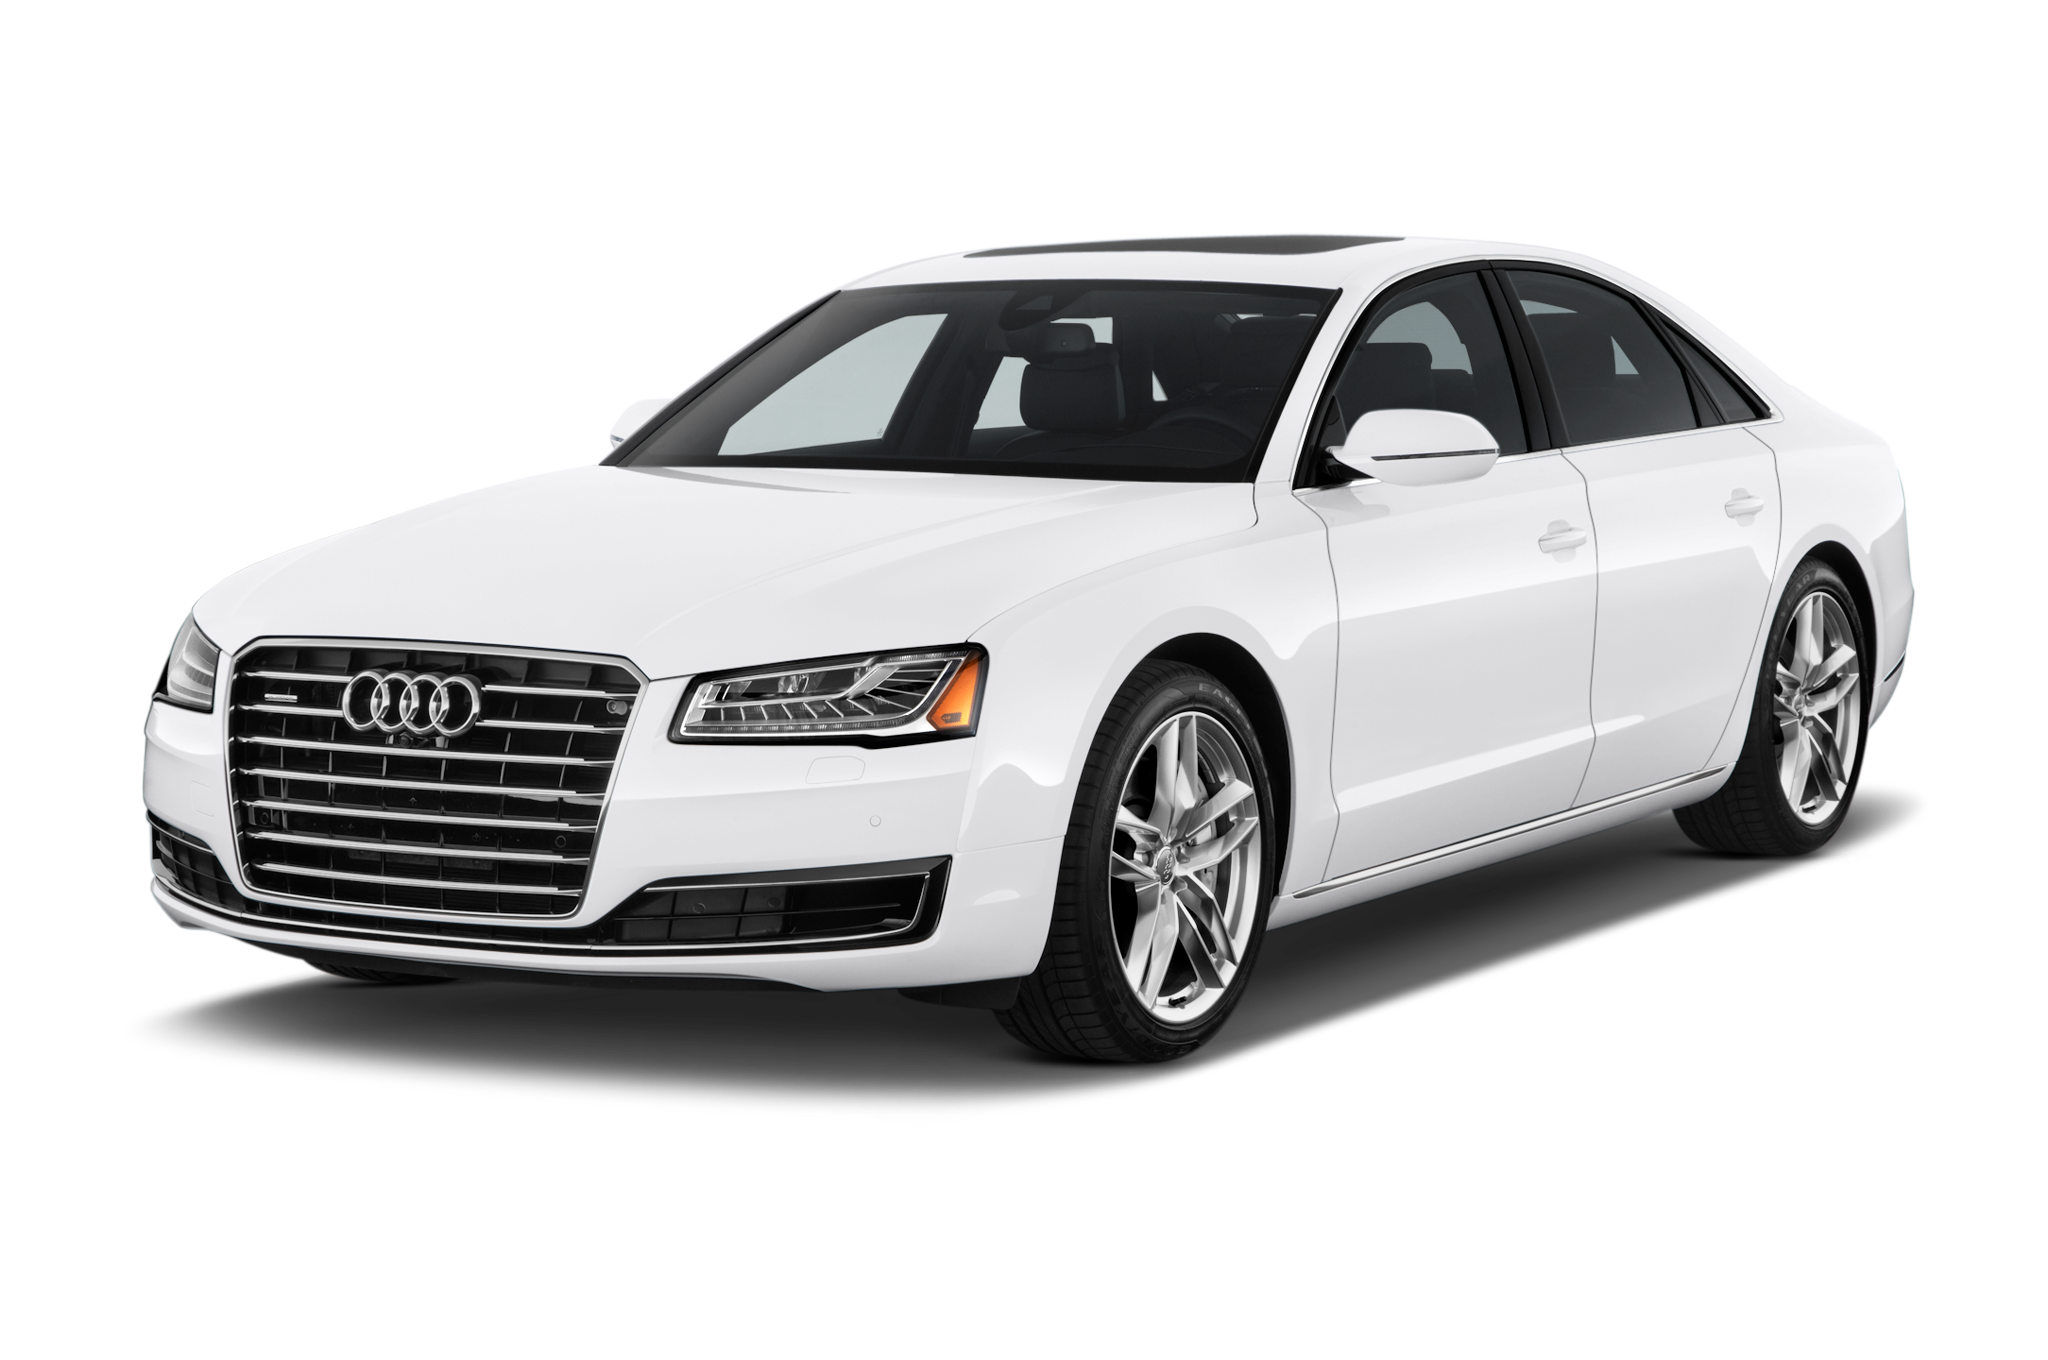 Clipart car convertible. Audi png download free